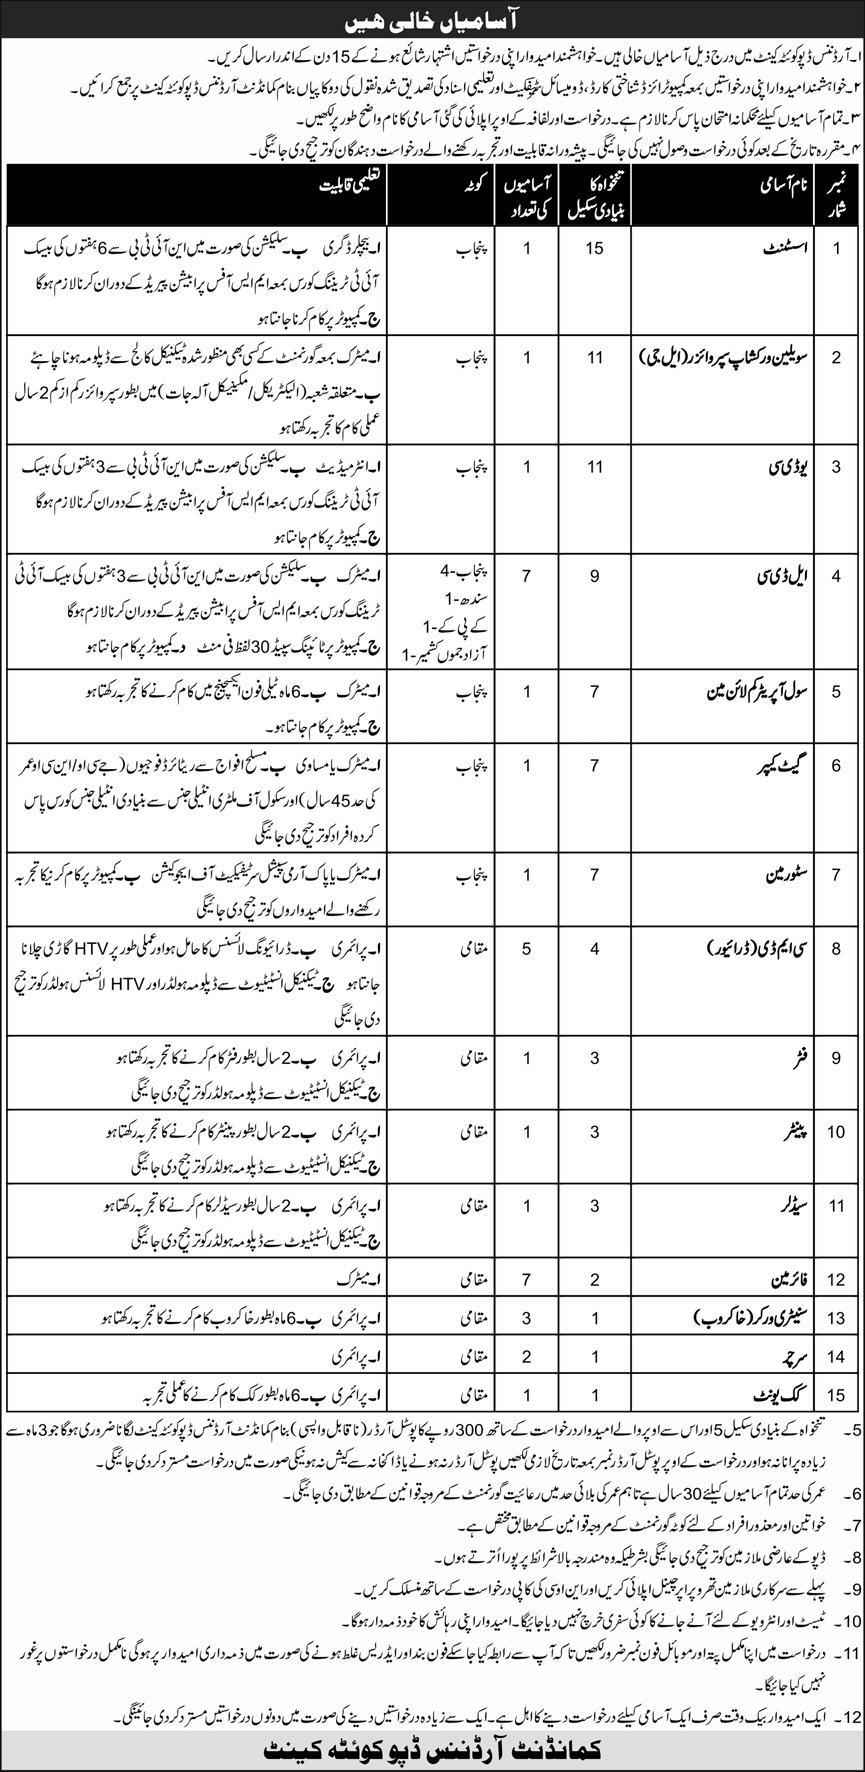 Pak Army Ordnance Depot Cantt Jobs 2020 for Assistant, UDC and more